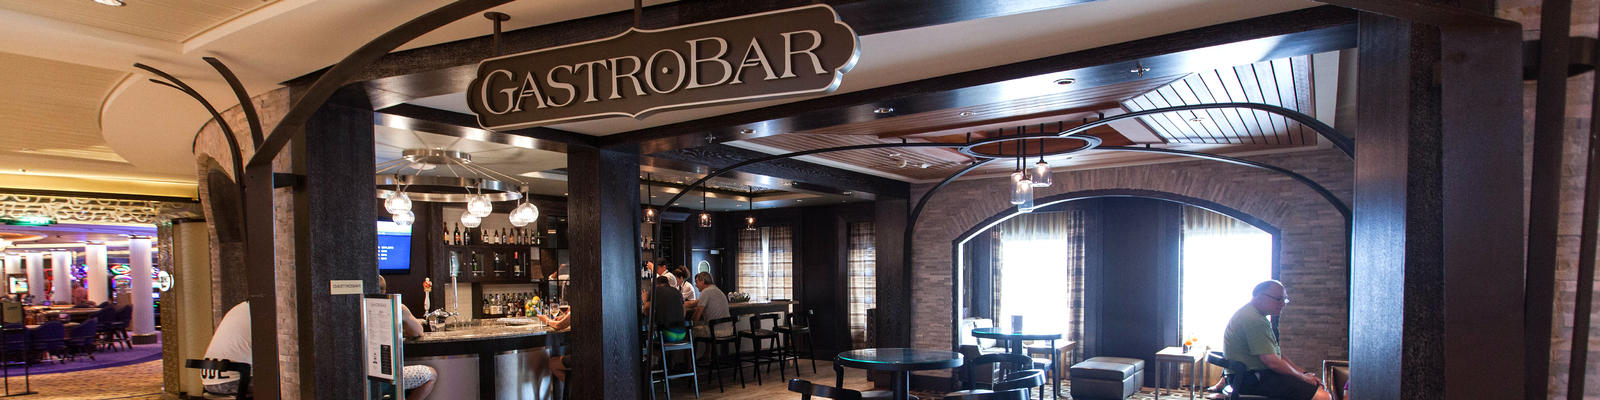 Gastrobar on Celebrity Equinox (Photo: Cruise Critic)